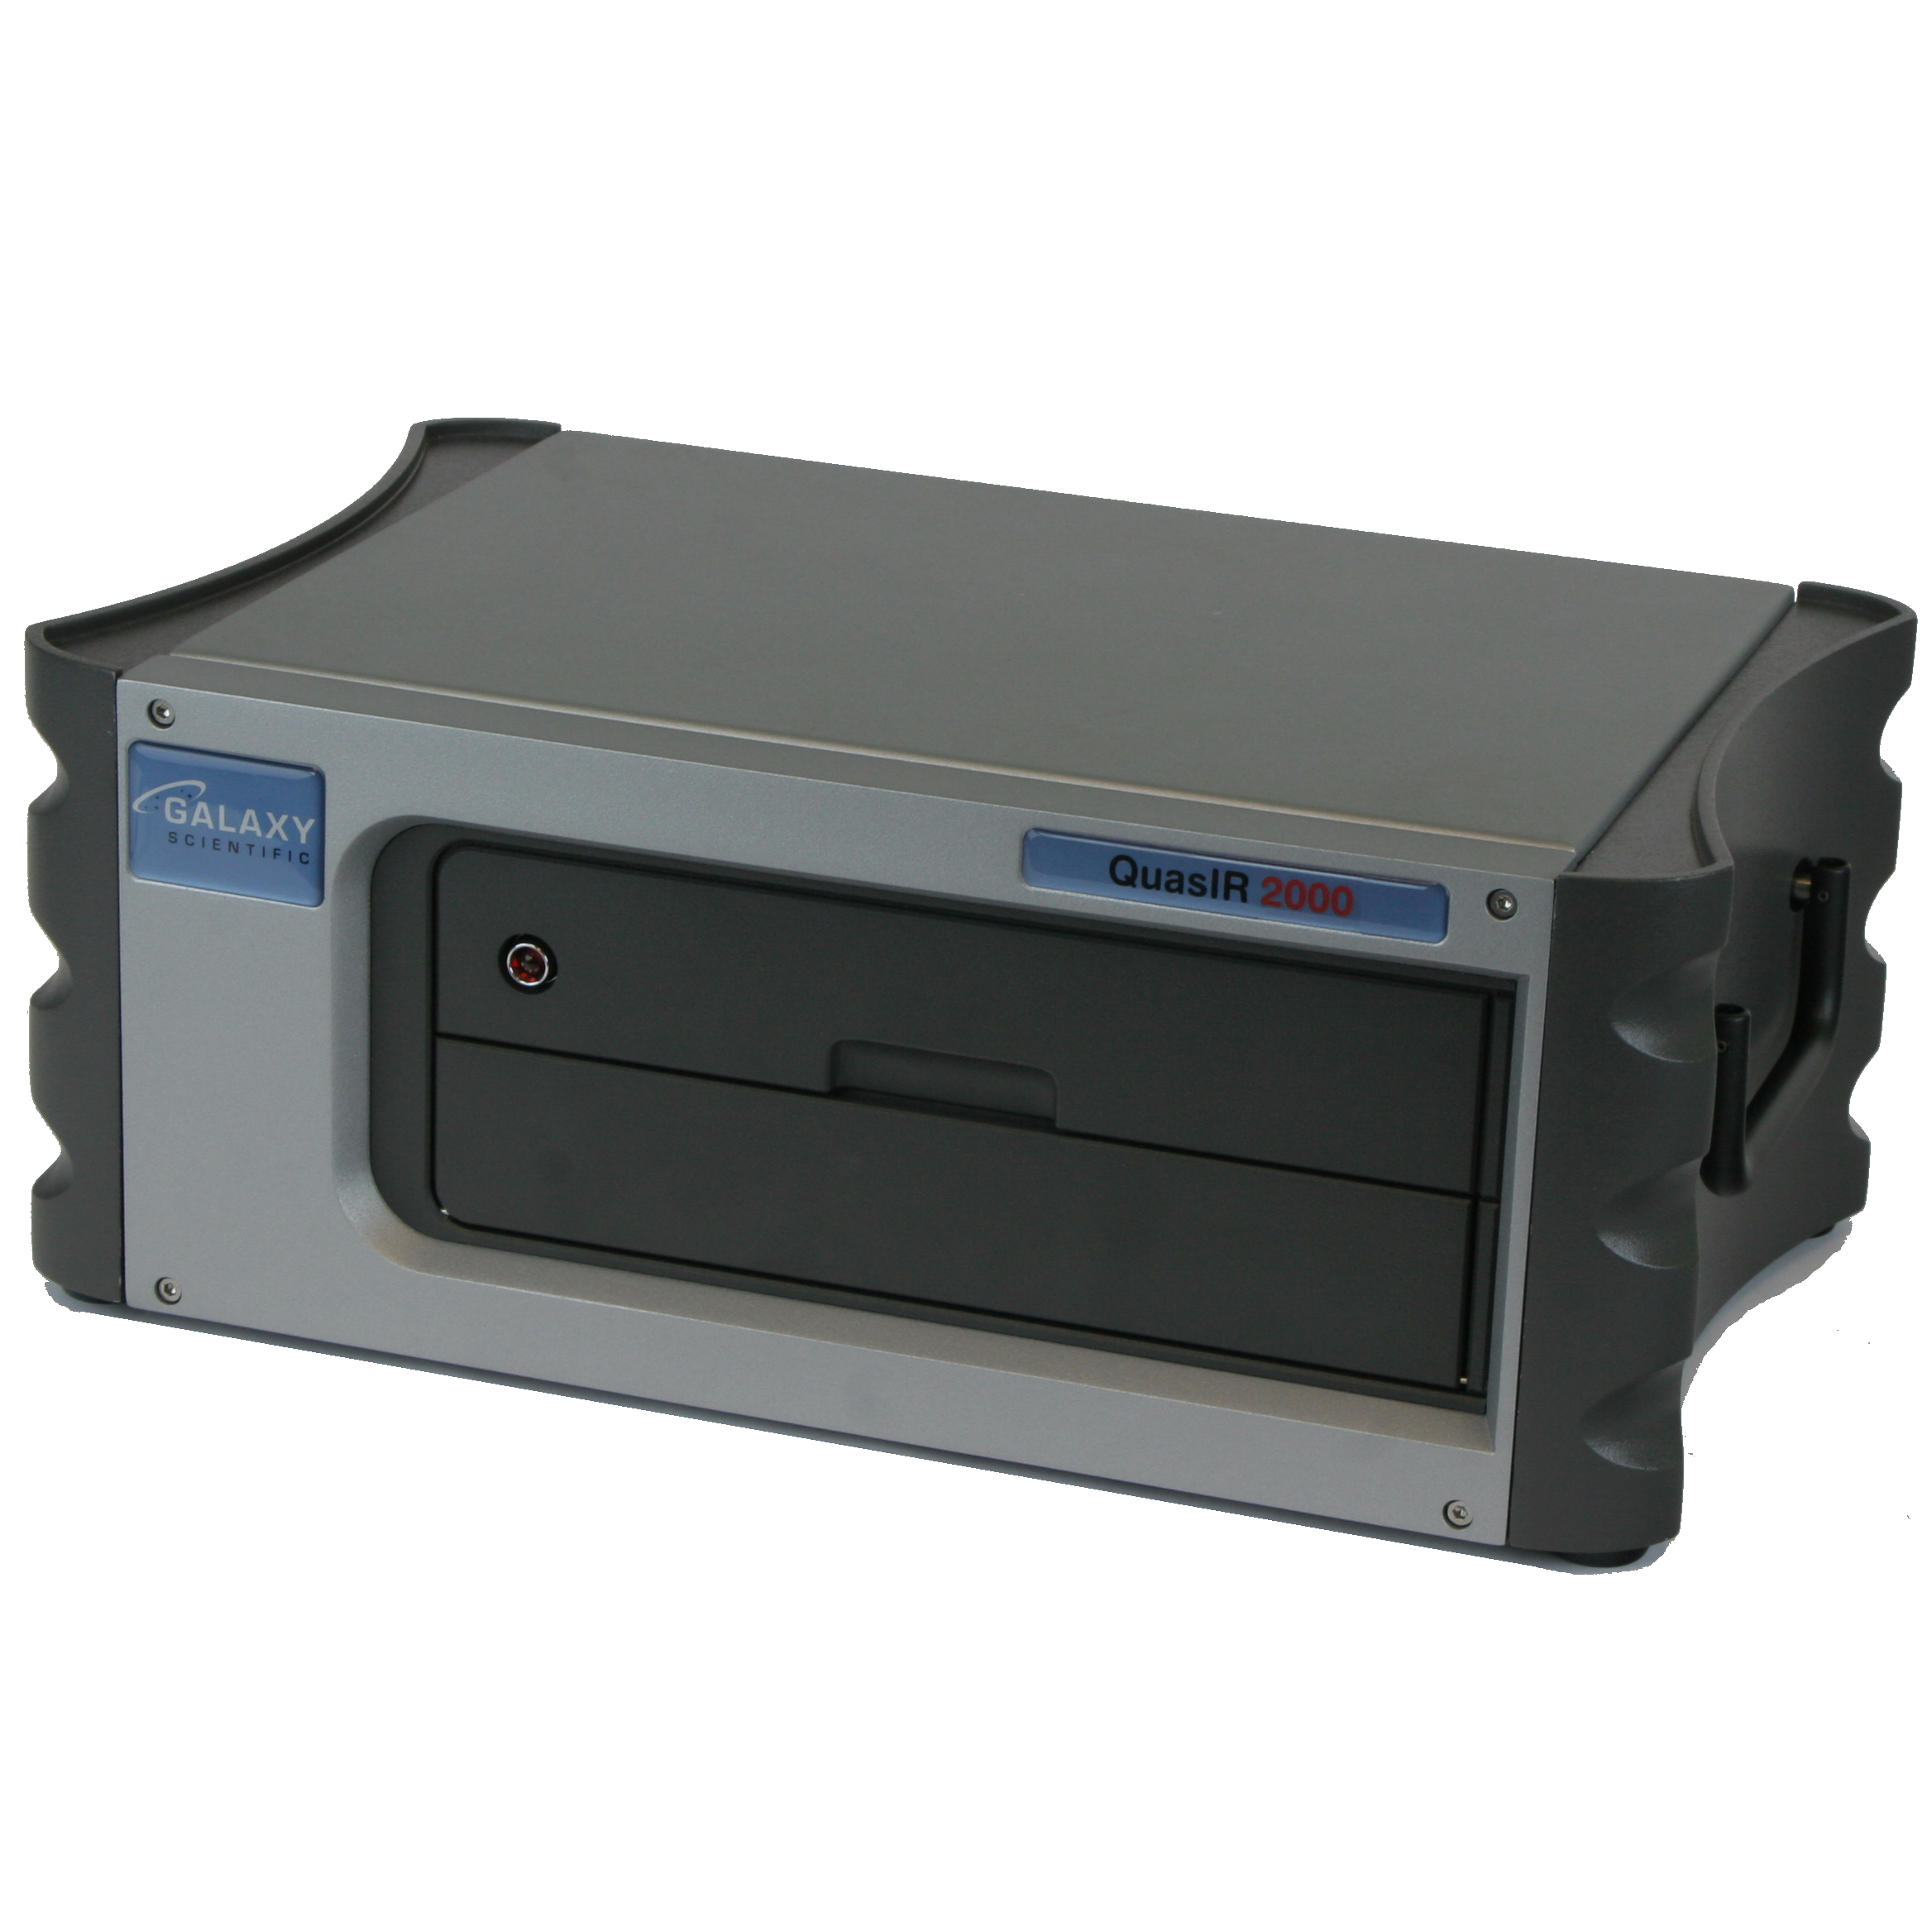 QuasIR™ 2000 Fiber Optic FT-NIR Spectrometer Image